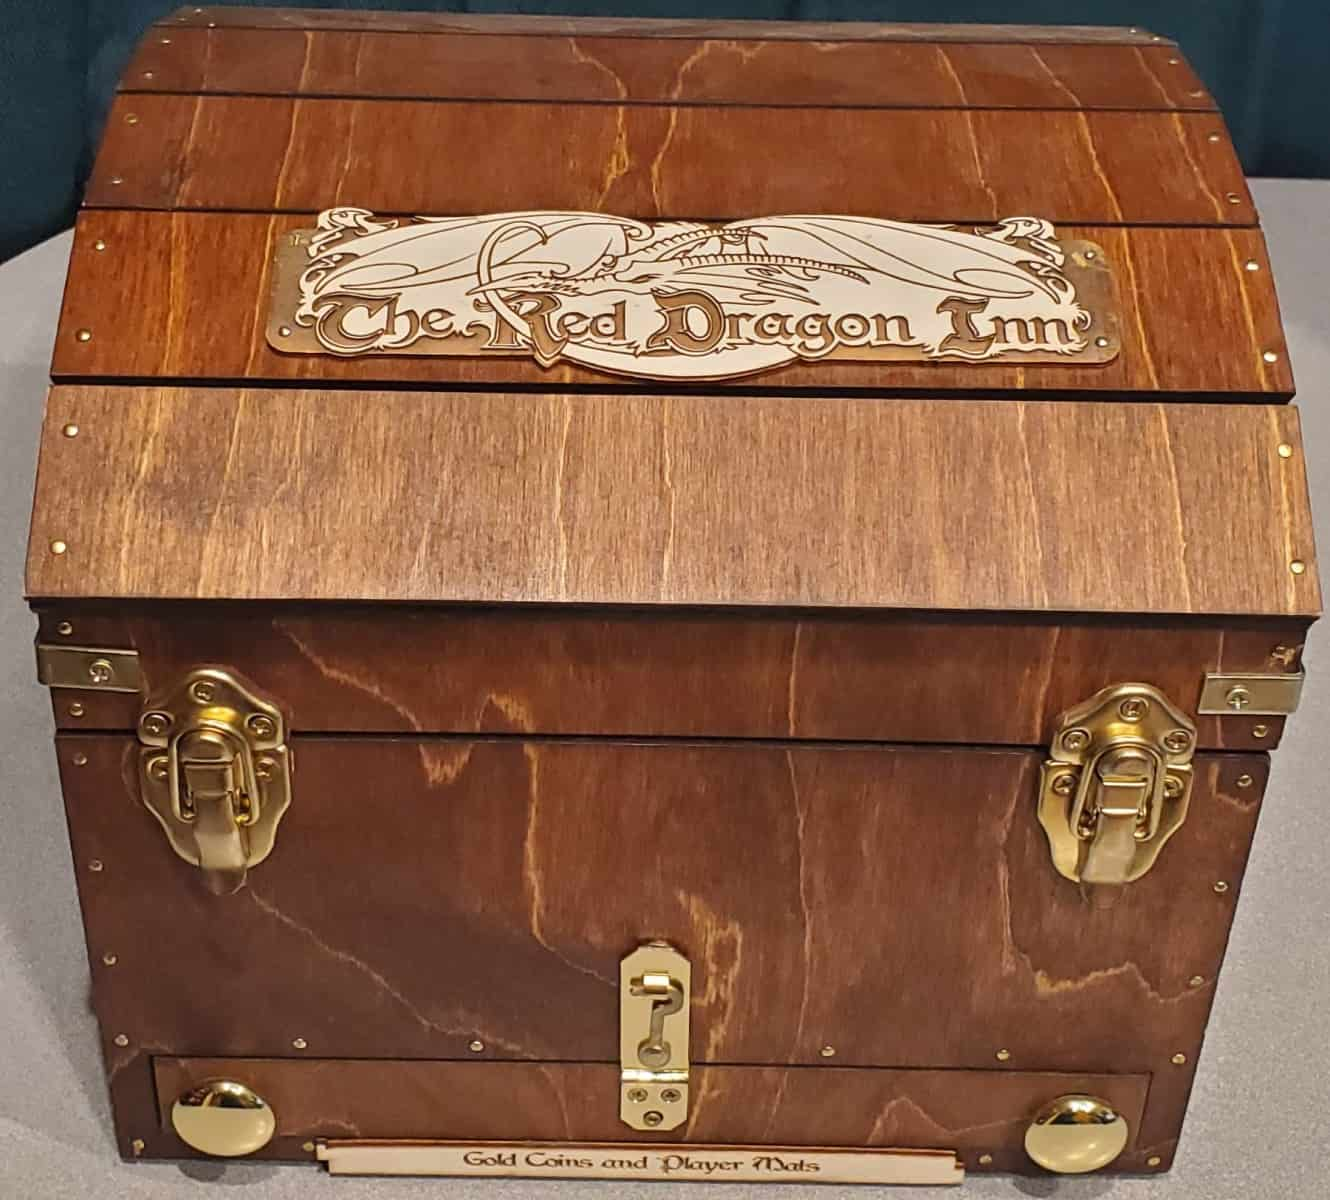 The Red Dragon Inn chest